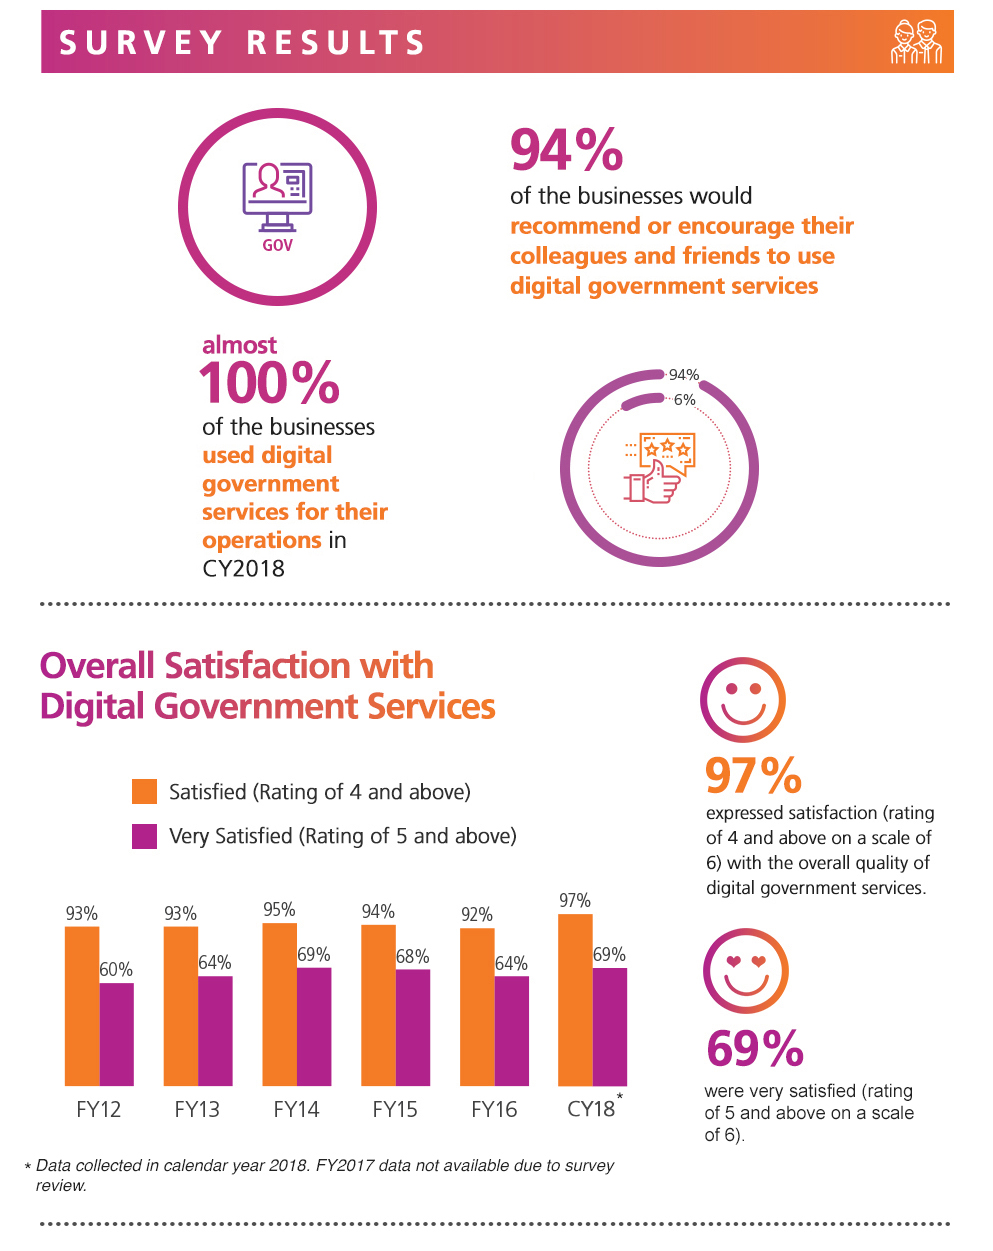 Digital Government Perception Survey 2018 for Business by GovTech